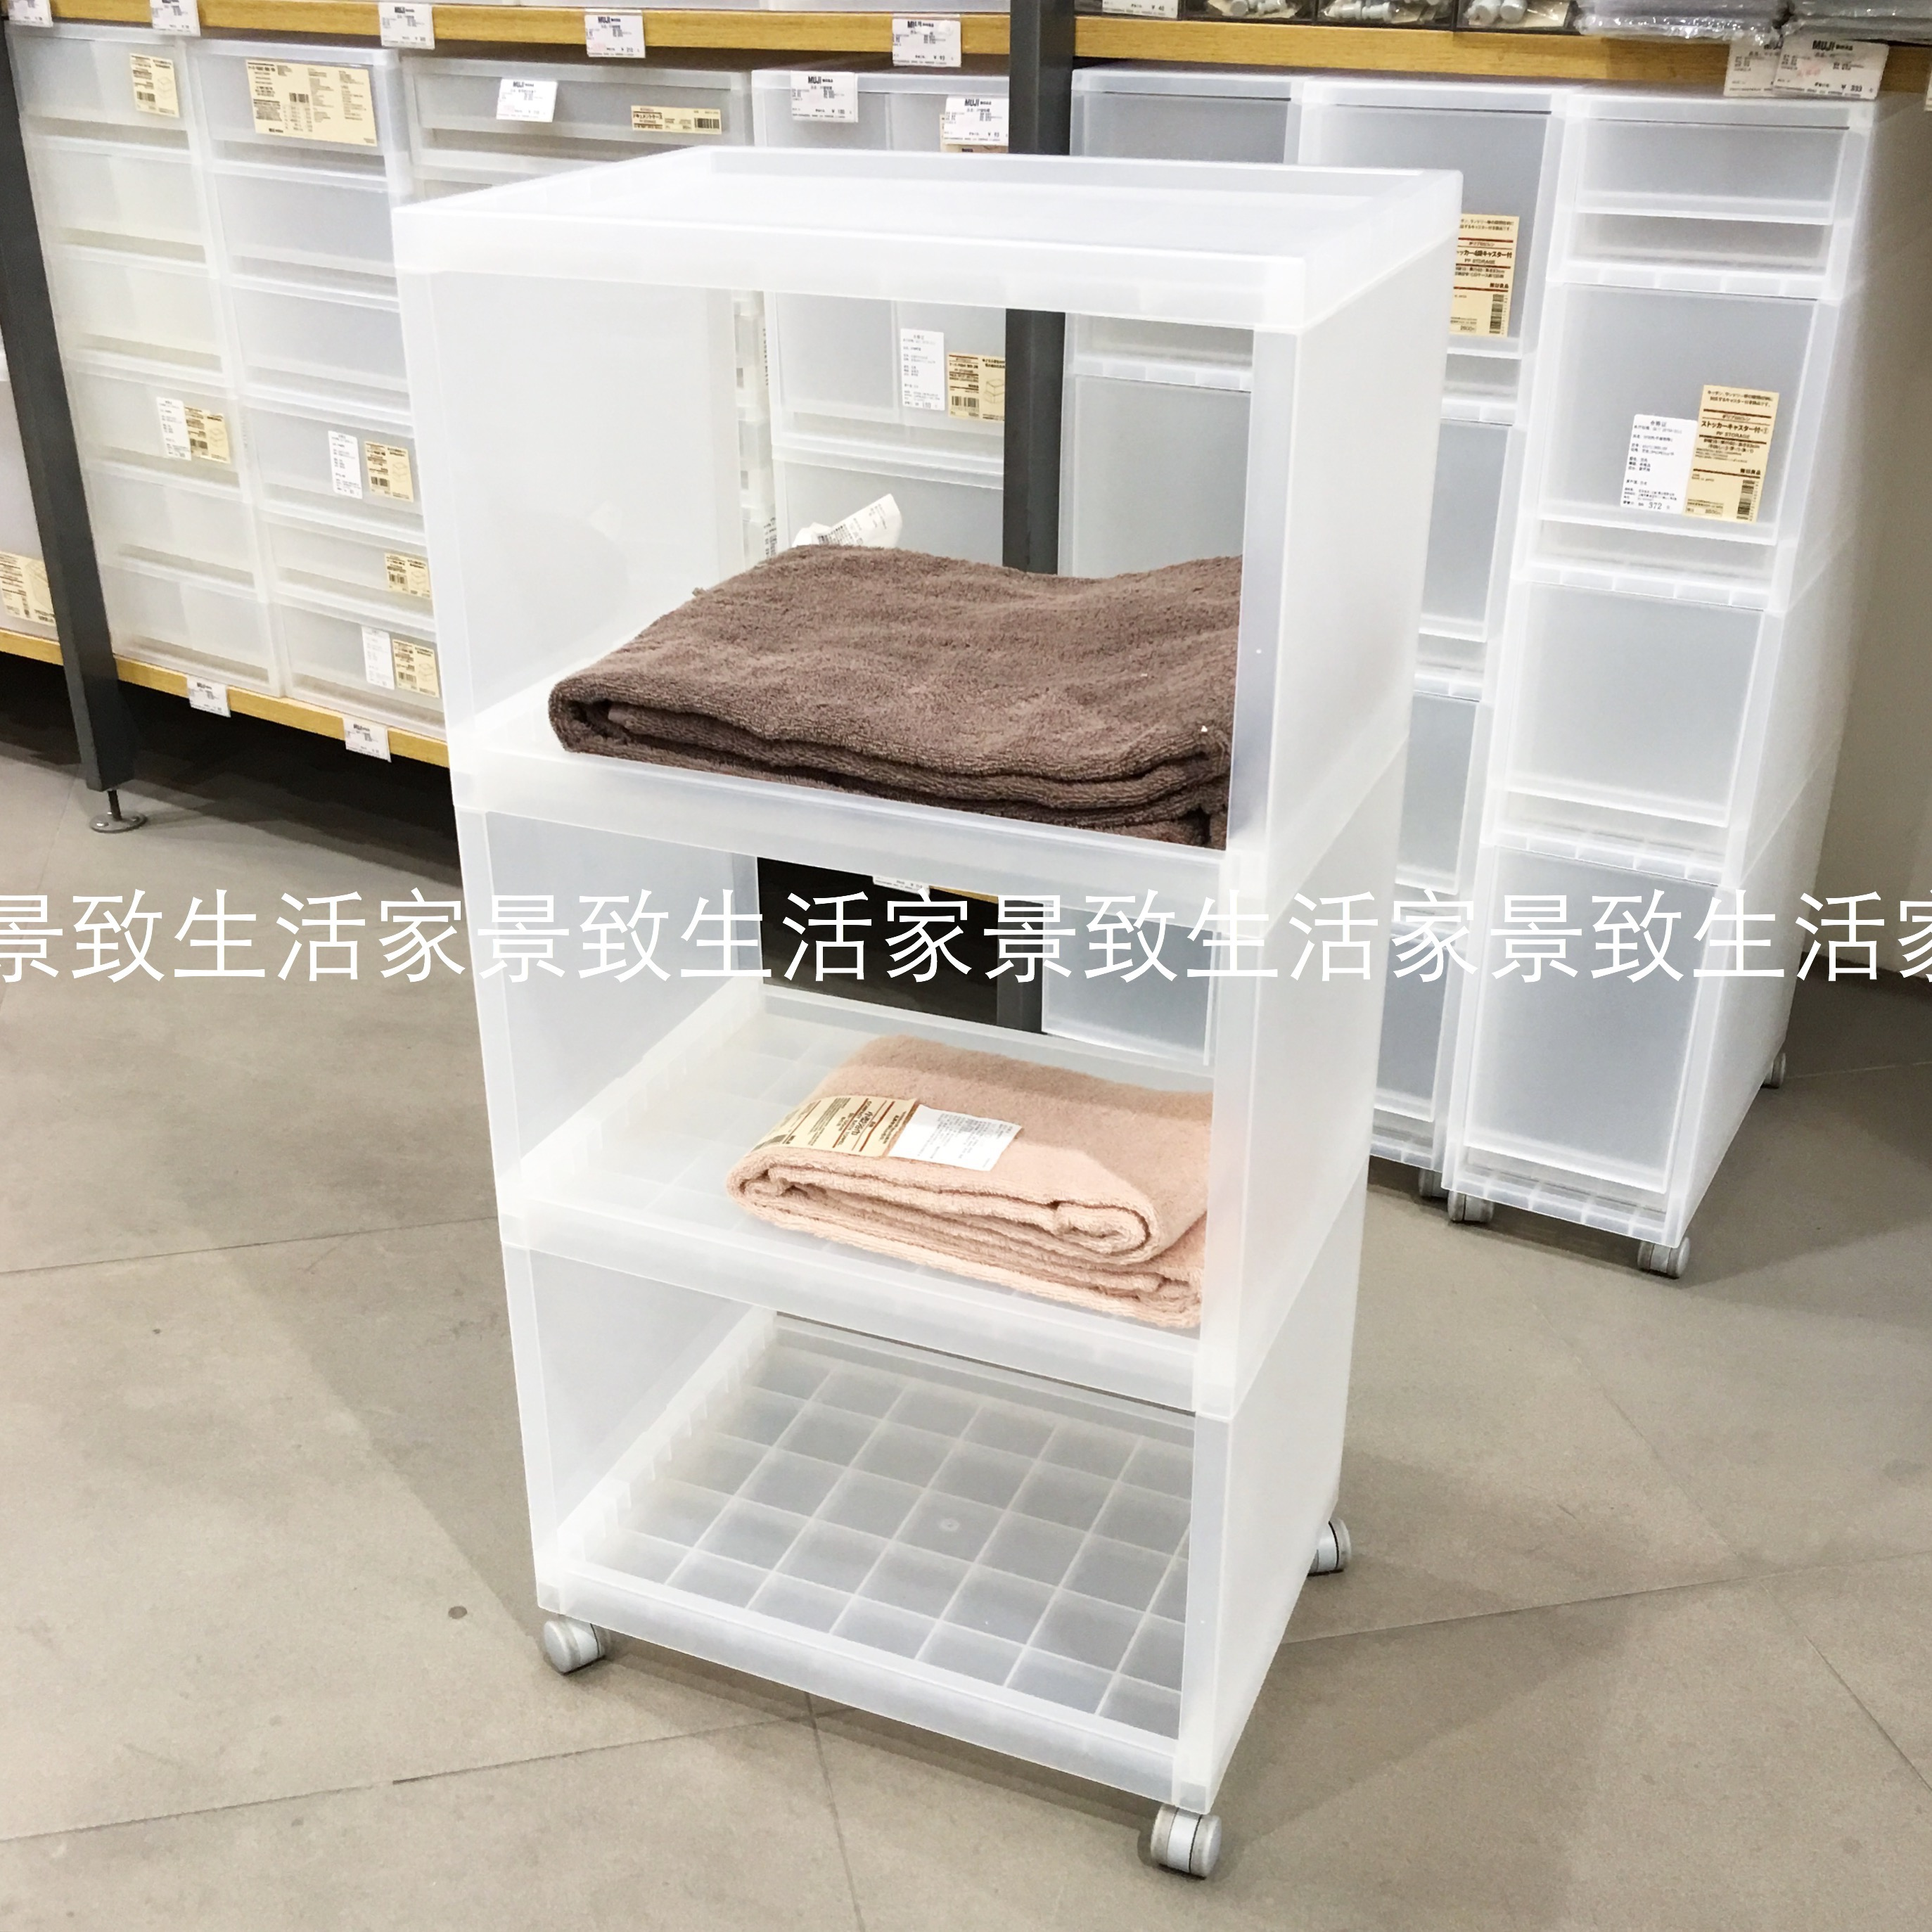 usd muji muji pp assembled carts with wheels. Black Bedroom Furniture Sets. Home Design Ideas